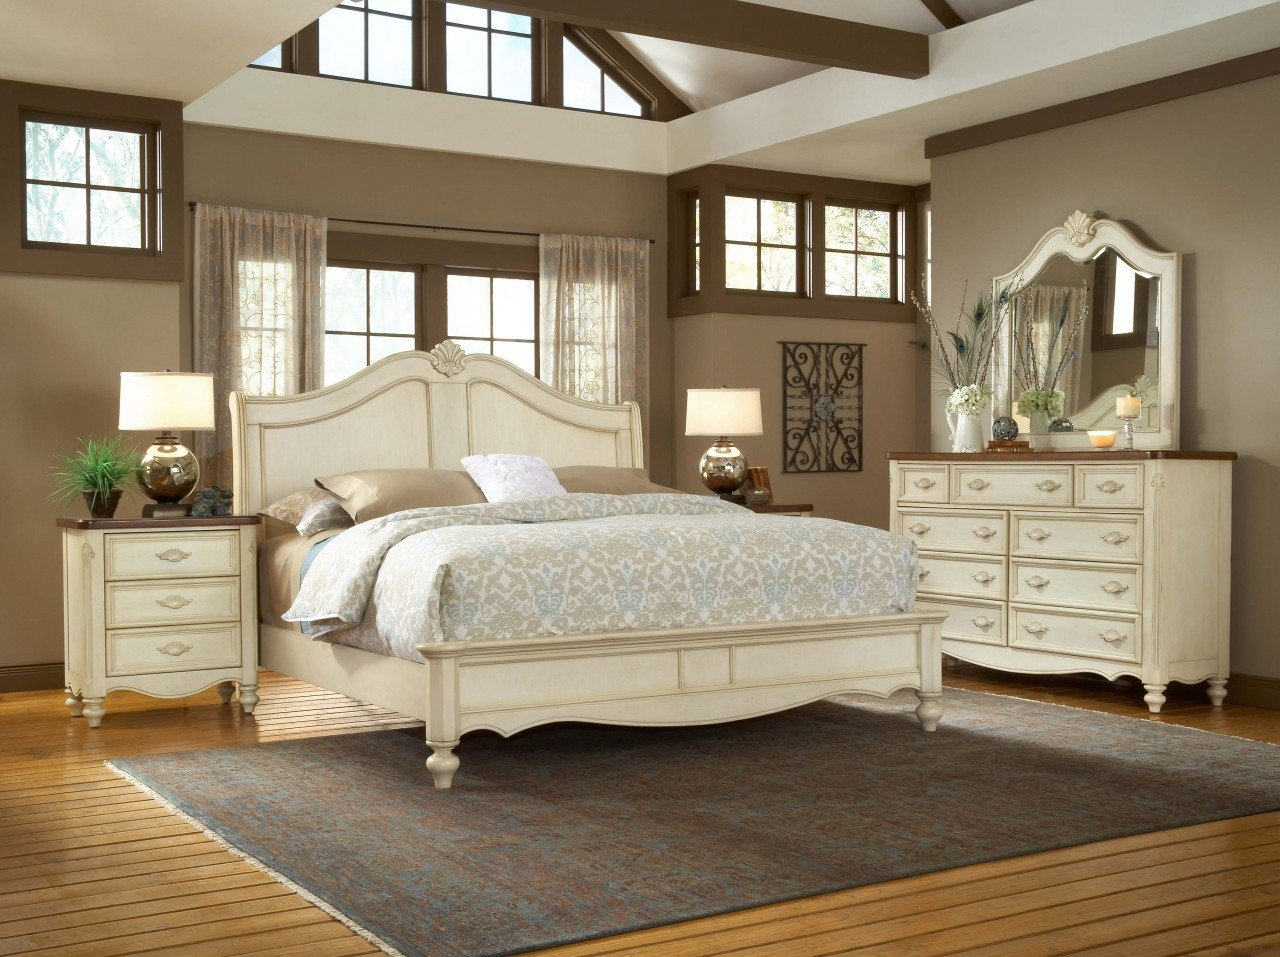 Ashley Furniture Prices Bedroom Sets Home Furniture Design